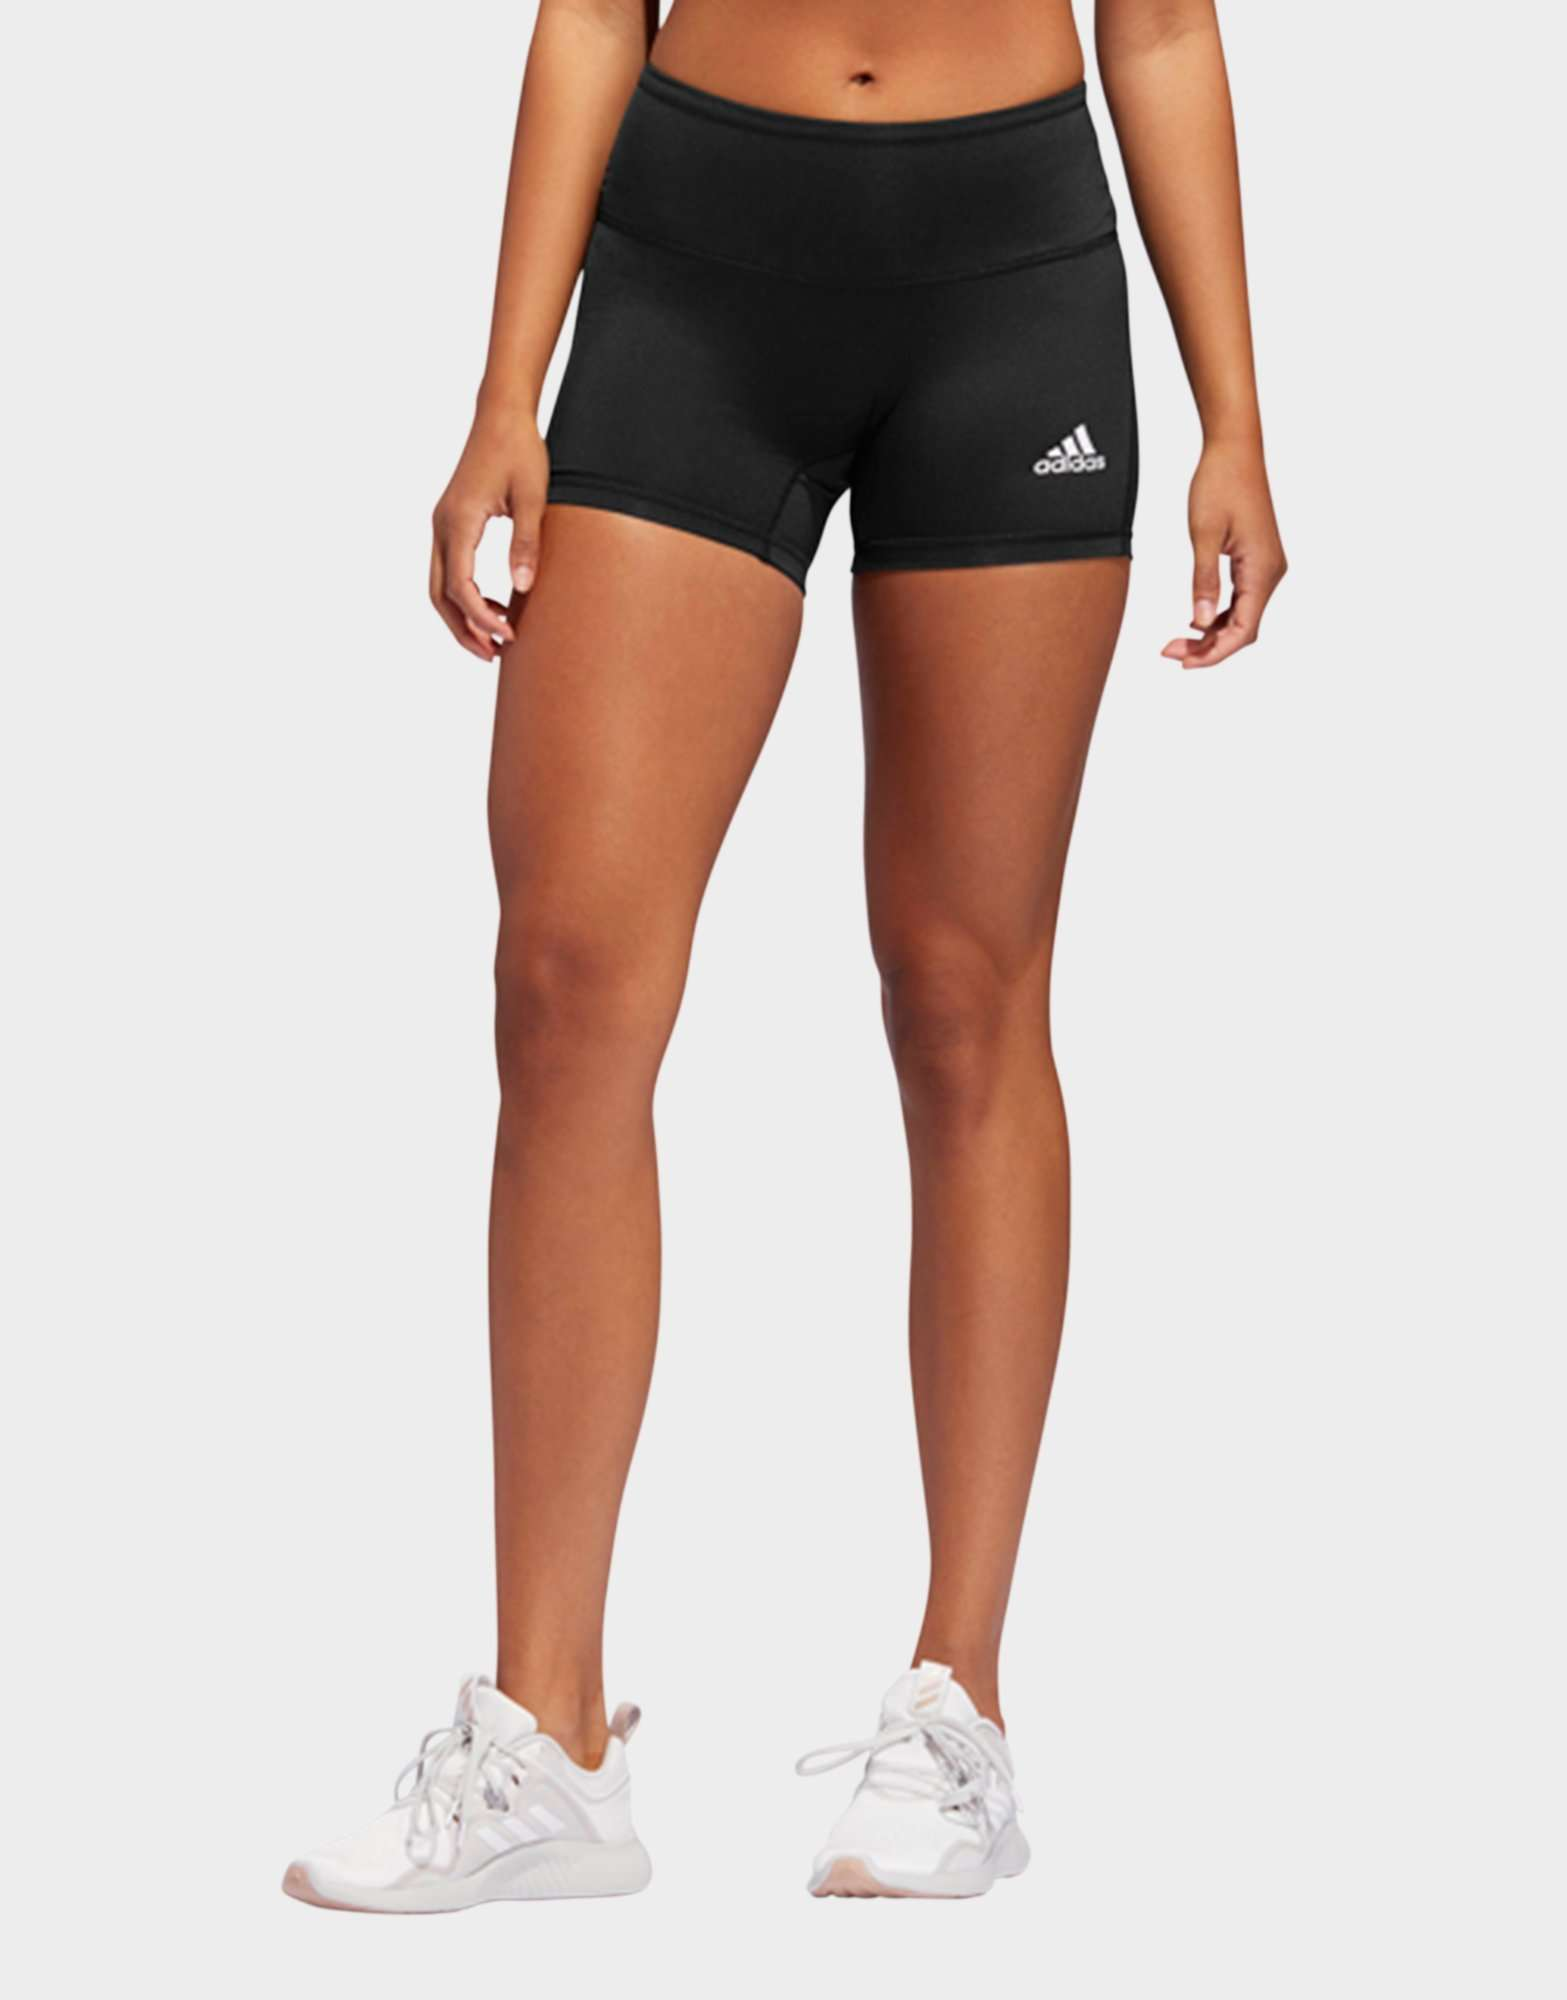 ADIDAS Four-Inch Short Tights